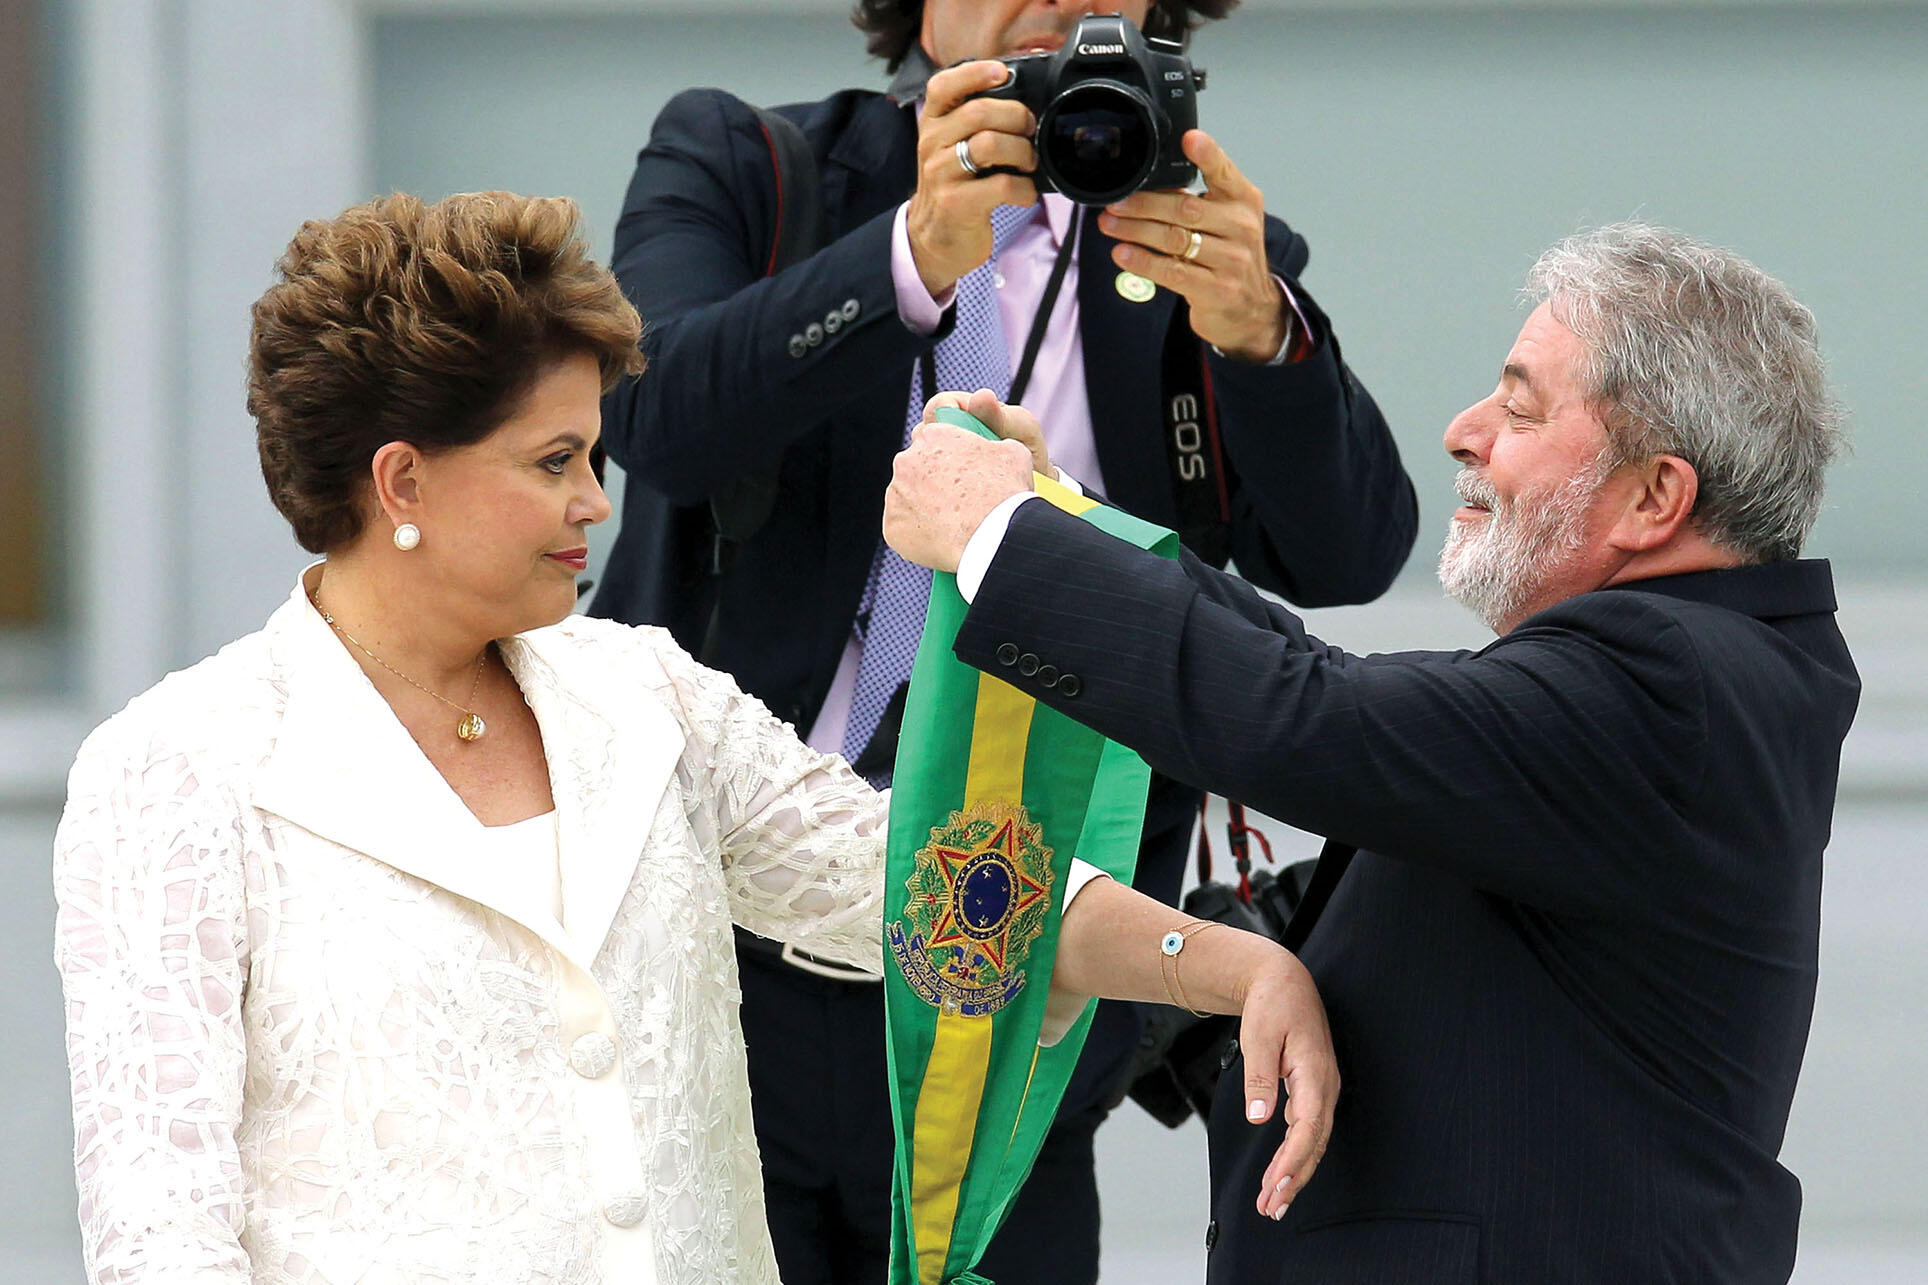 Lula hands over the presidential sash to Dilma Rousseff for her inauguration in 2011. (Photo by Celso Junior/Agência Estado/AE.)